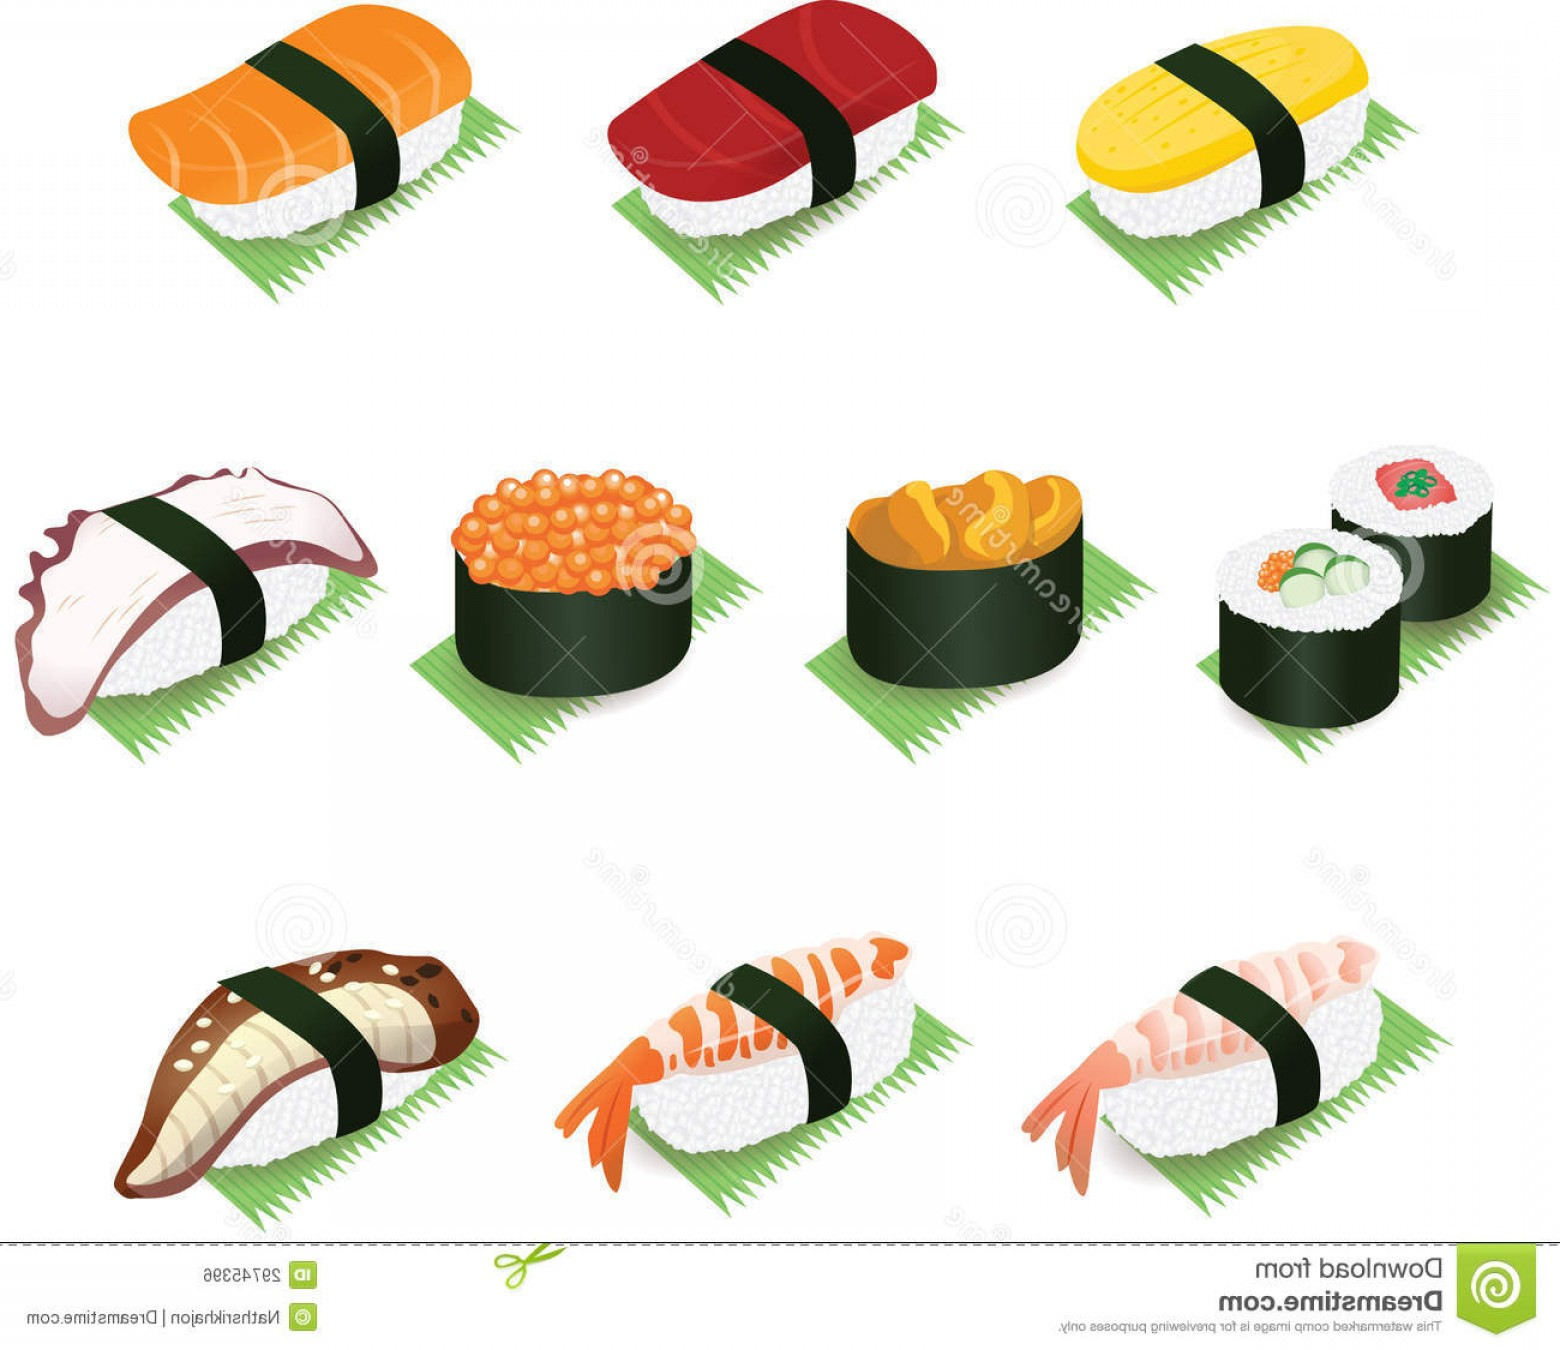 Sushi Vector Art: Royalty Free Stock Image Japanese Sushi Rolls Food Vector Icon Illustration Image